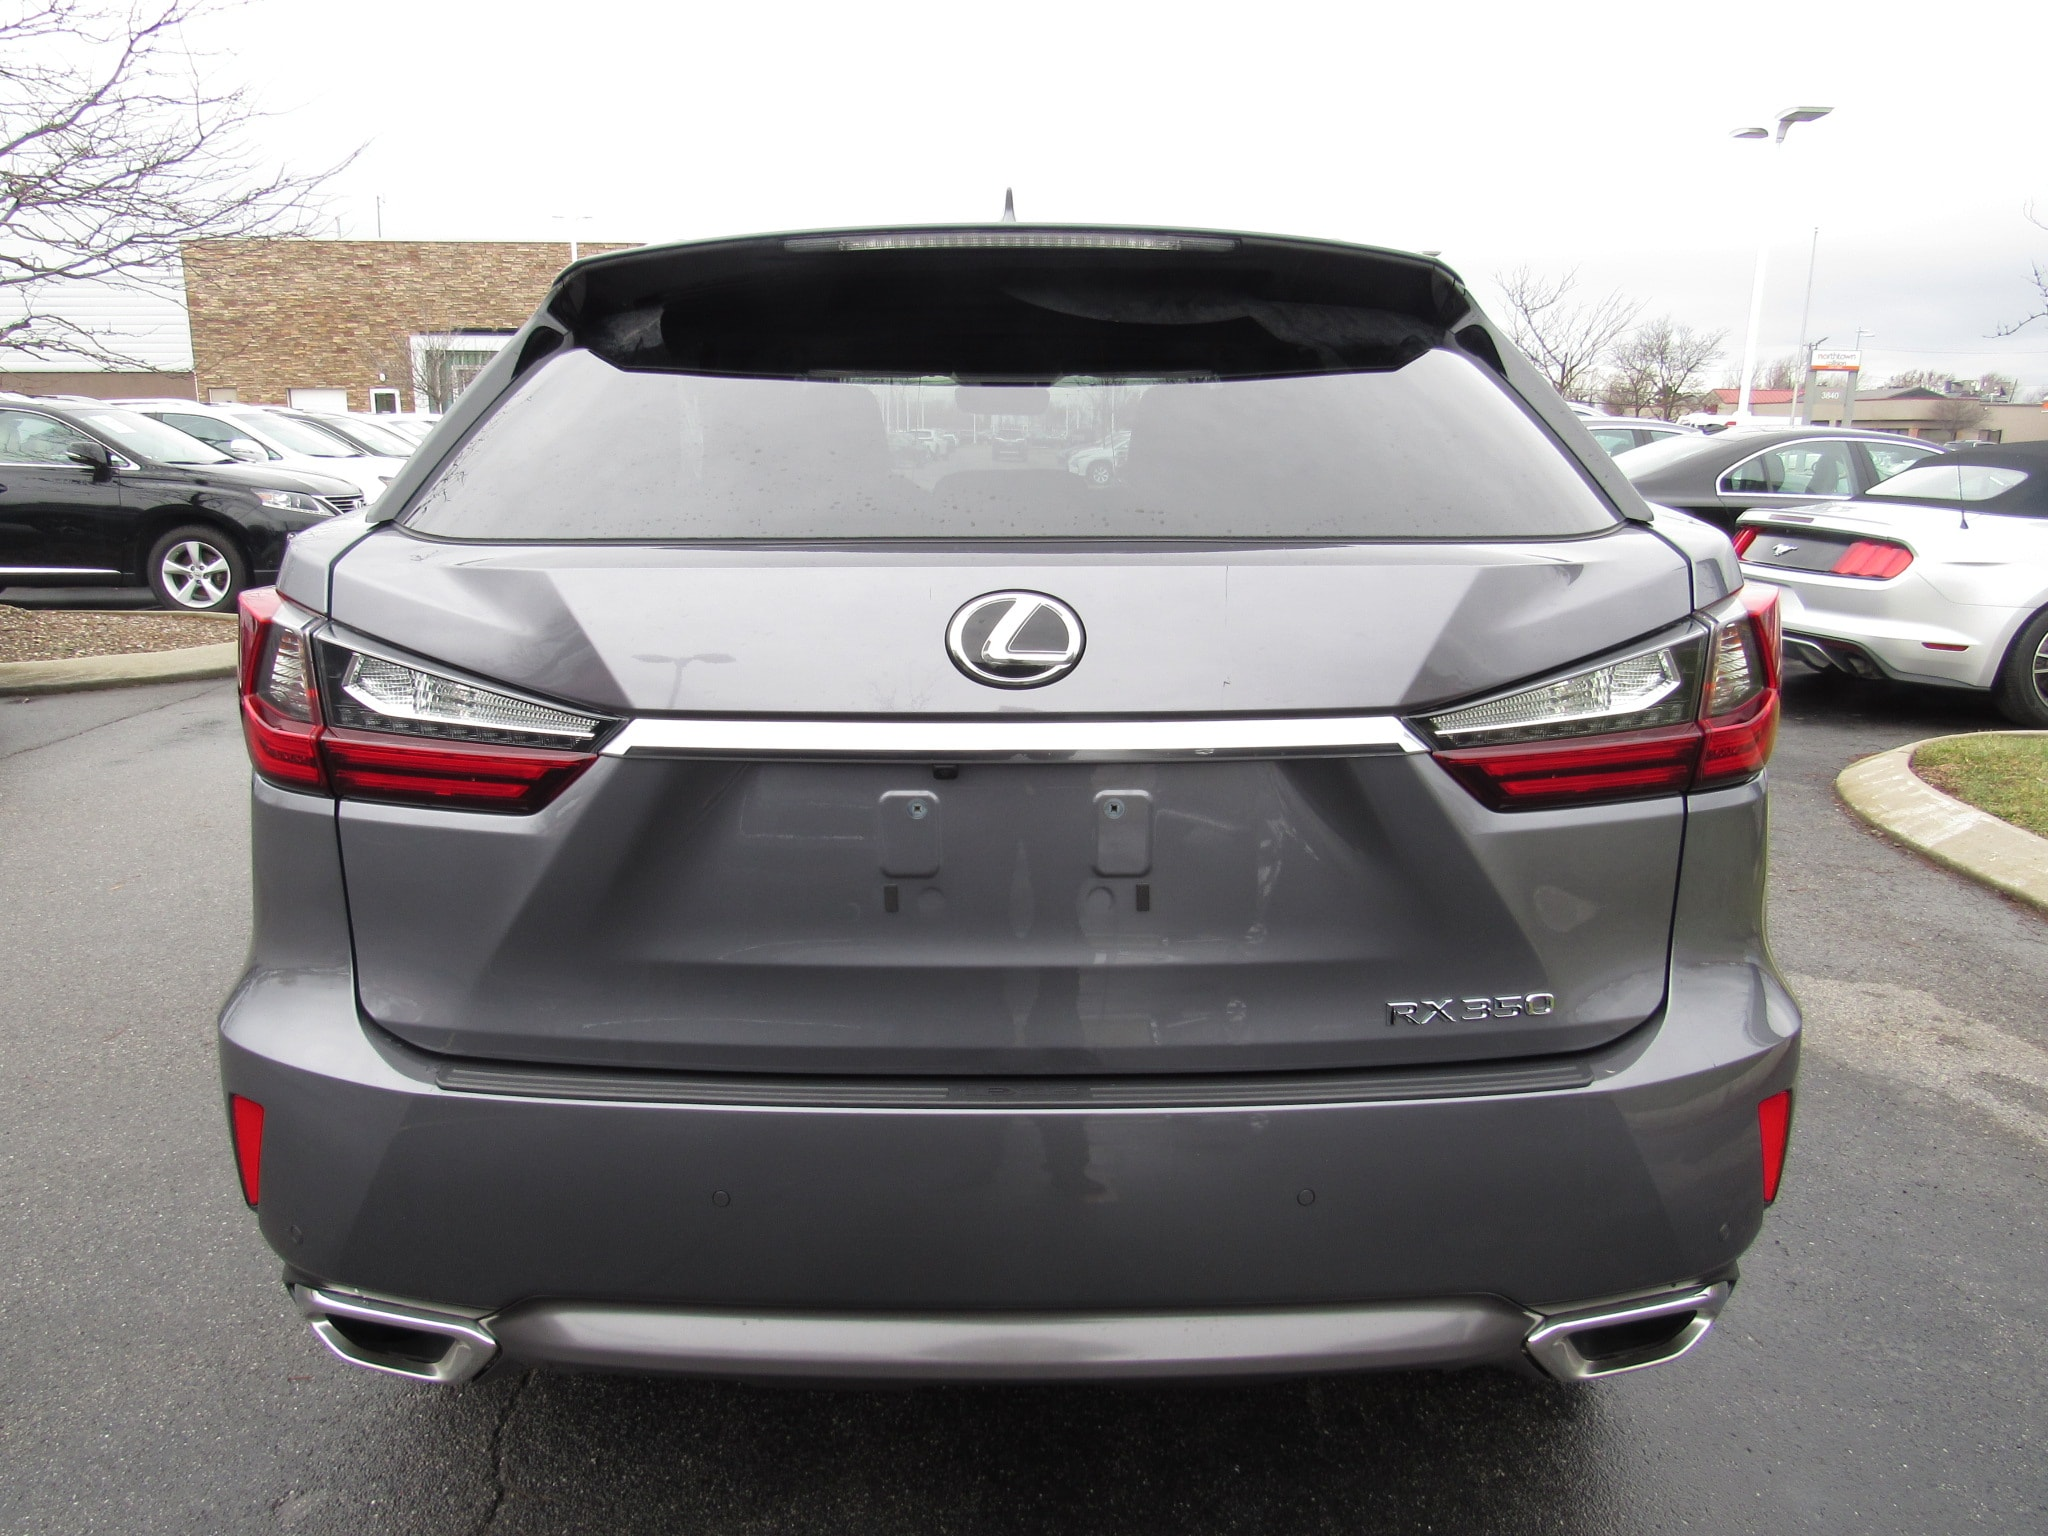 Buffalo Certified Used 2017 LEXUS RX 350 for Sale in Amherst